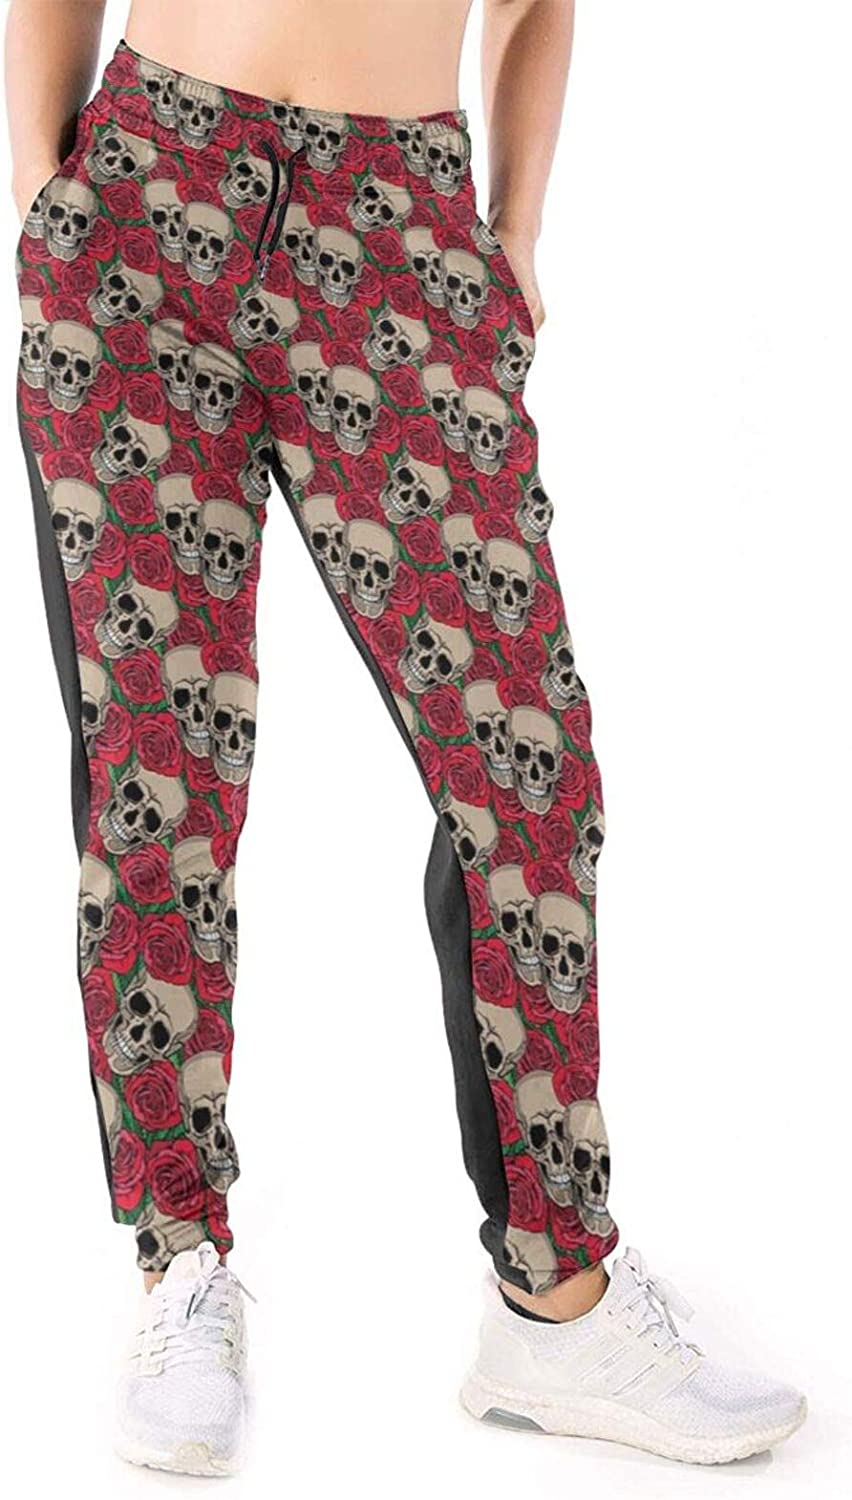 LONEA Women Joggers Pants Skulls and Red Rose Athletic Sweatpants with Pockets Casual Trousers Baggy